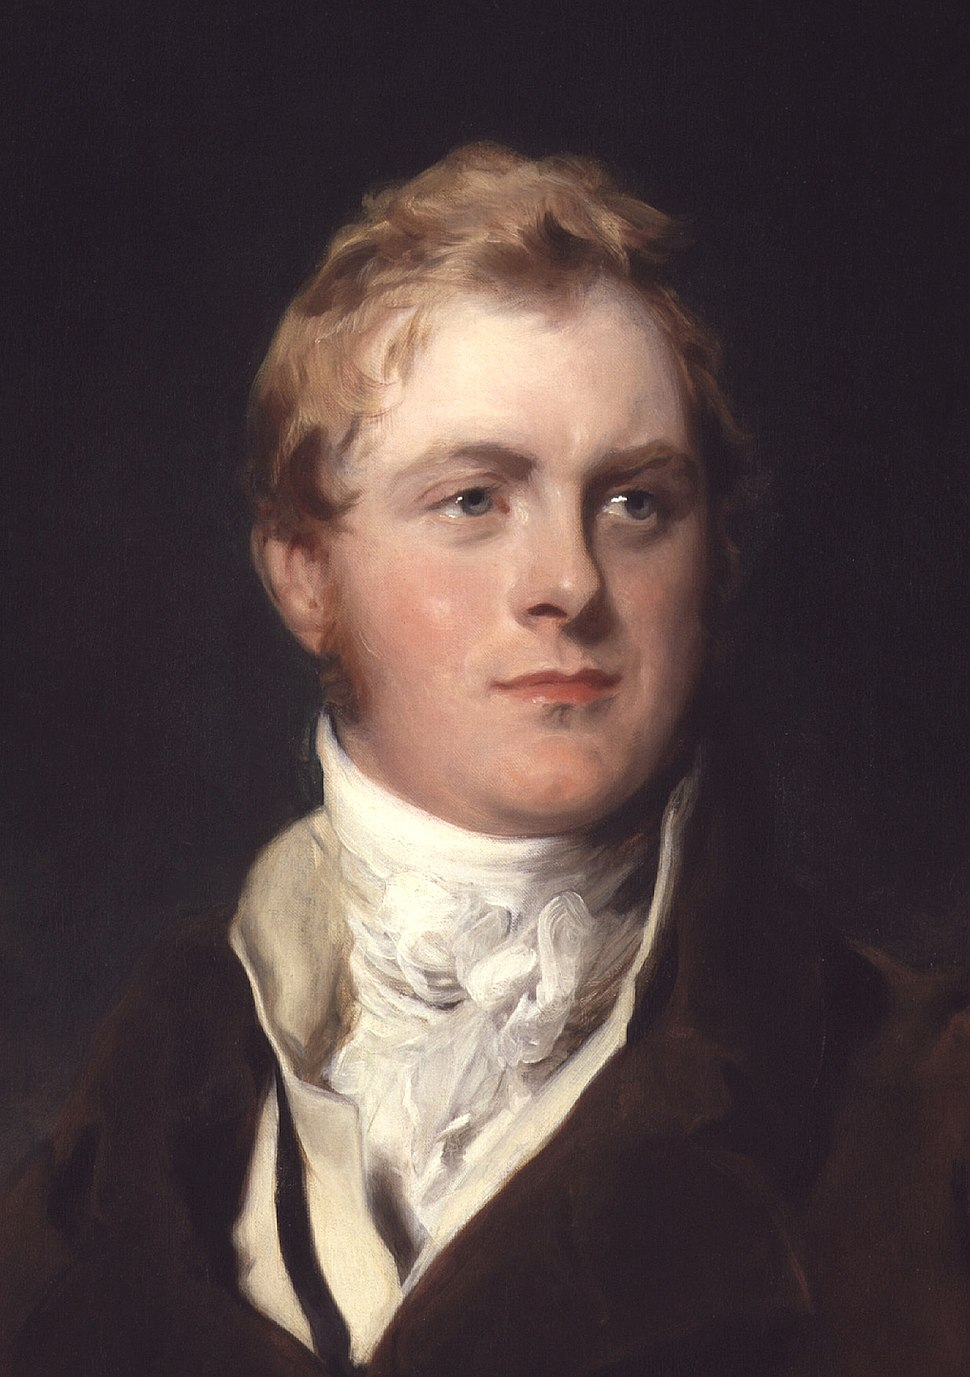 Frederick John Robinson, 1st Earl of Ripon by Sir Thomas Lawrence cropped